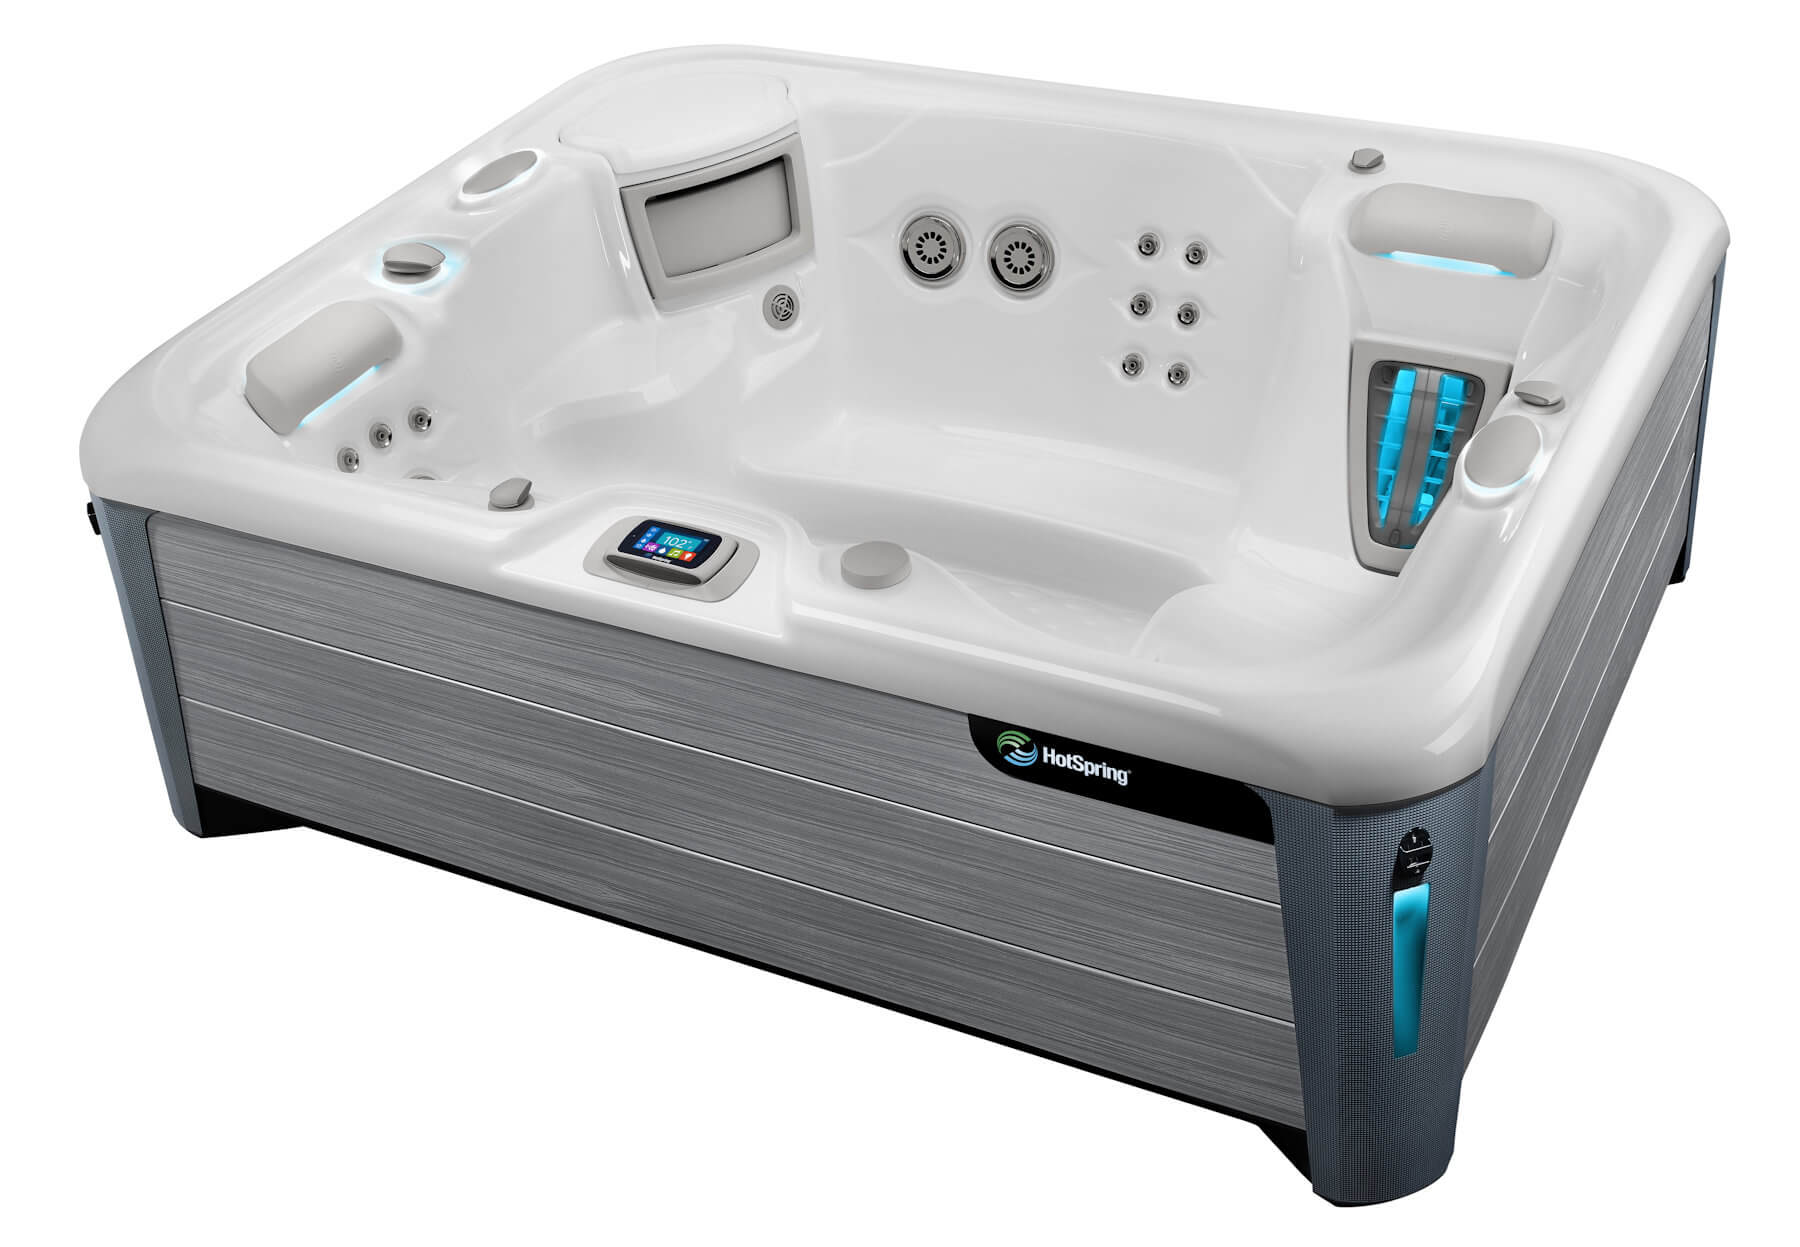 New Spas from Hot Spring® in 2019 | Townley Pool and Spa Wiring Diagram For Hot Spot Tub on hot tub repair, hot tub wiring 220, hot tub specification, electrical outlets diagram, hot tub heating diagram, hot tub schematic, hot tub pump diagram, ceiling fan installation diagram, hot tub thermostat, hot tub hook up diagram, hot tub timer, hot tub trouble shooting, circuit diagram, hot tub parts diagram, hot tub heater, hot tub wiring guide, hot tub wiring 120v, hot tub wiring install, hot tub connectors, hot tub plumbing diagram,